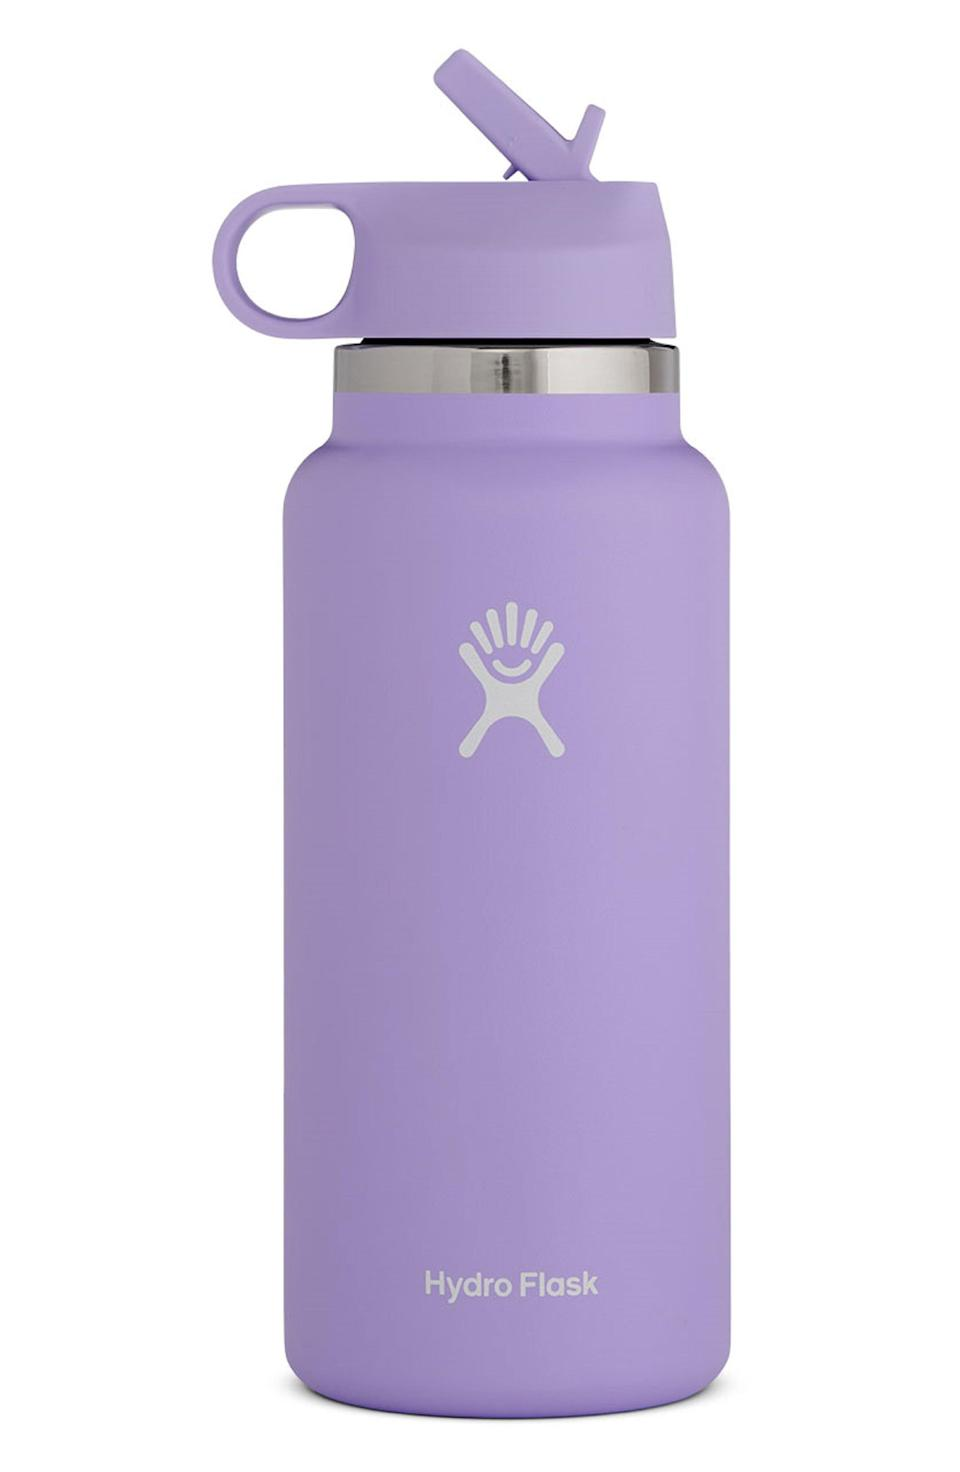 """<p><strong>HYDRO FLASK</strong></p><p>nordstrom.com</p><p><strong>$32.90</strong></p><p><a href=""""https://go.redirectingat.com?id=74968X1596630&url=https%3A%2F%2Fwww.nordstrom.com%2Fs%2Fhydro-flask-32-ounce-wide-mouth-bottle-with-straw-lid-nordstrom-exclusive-color%2F5566935&sref=https%3A%2F%2Fwww.womenshealthmag.com%2Flife%2Fg33415769%2Fnordstrom-anniversay-sale-preview%2F"""" rel=""""nofollow noopener"""" target=""""_blank"""" data-ylk=""""slk:Shop Now"""" class=""""link rapid-noclick-resp"""">Shop Now</a></p><p>If your old water bottle is looking like it's seen better days, make sure you shop the Nordstrom sale. Originally $49.95, this Hydro Flask bottle will be on sale for $32.90. </p>"""